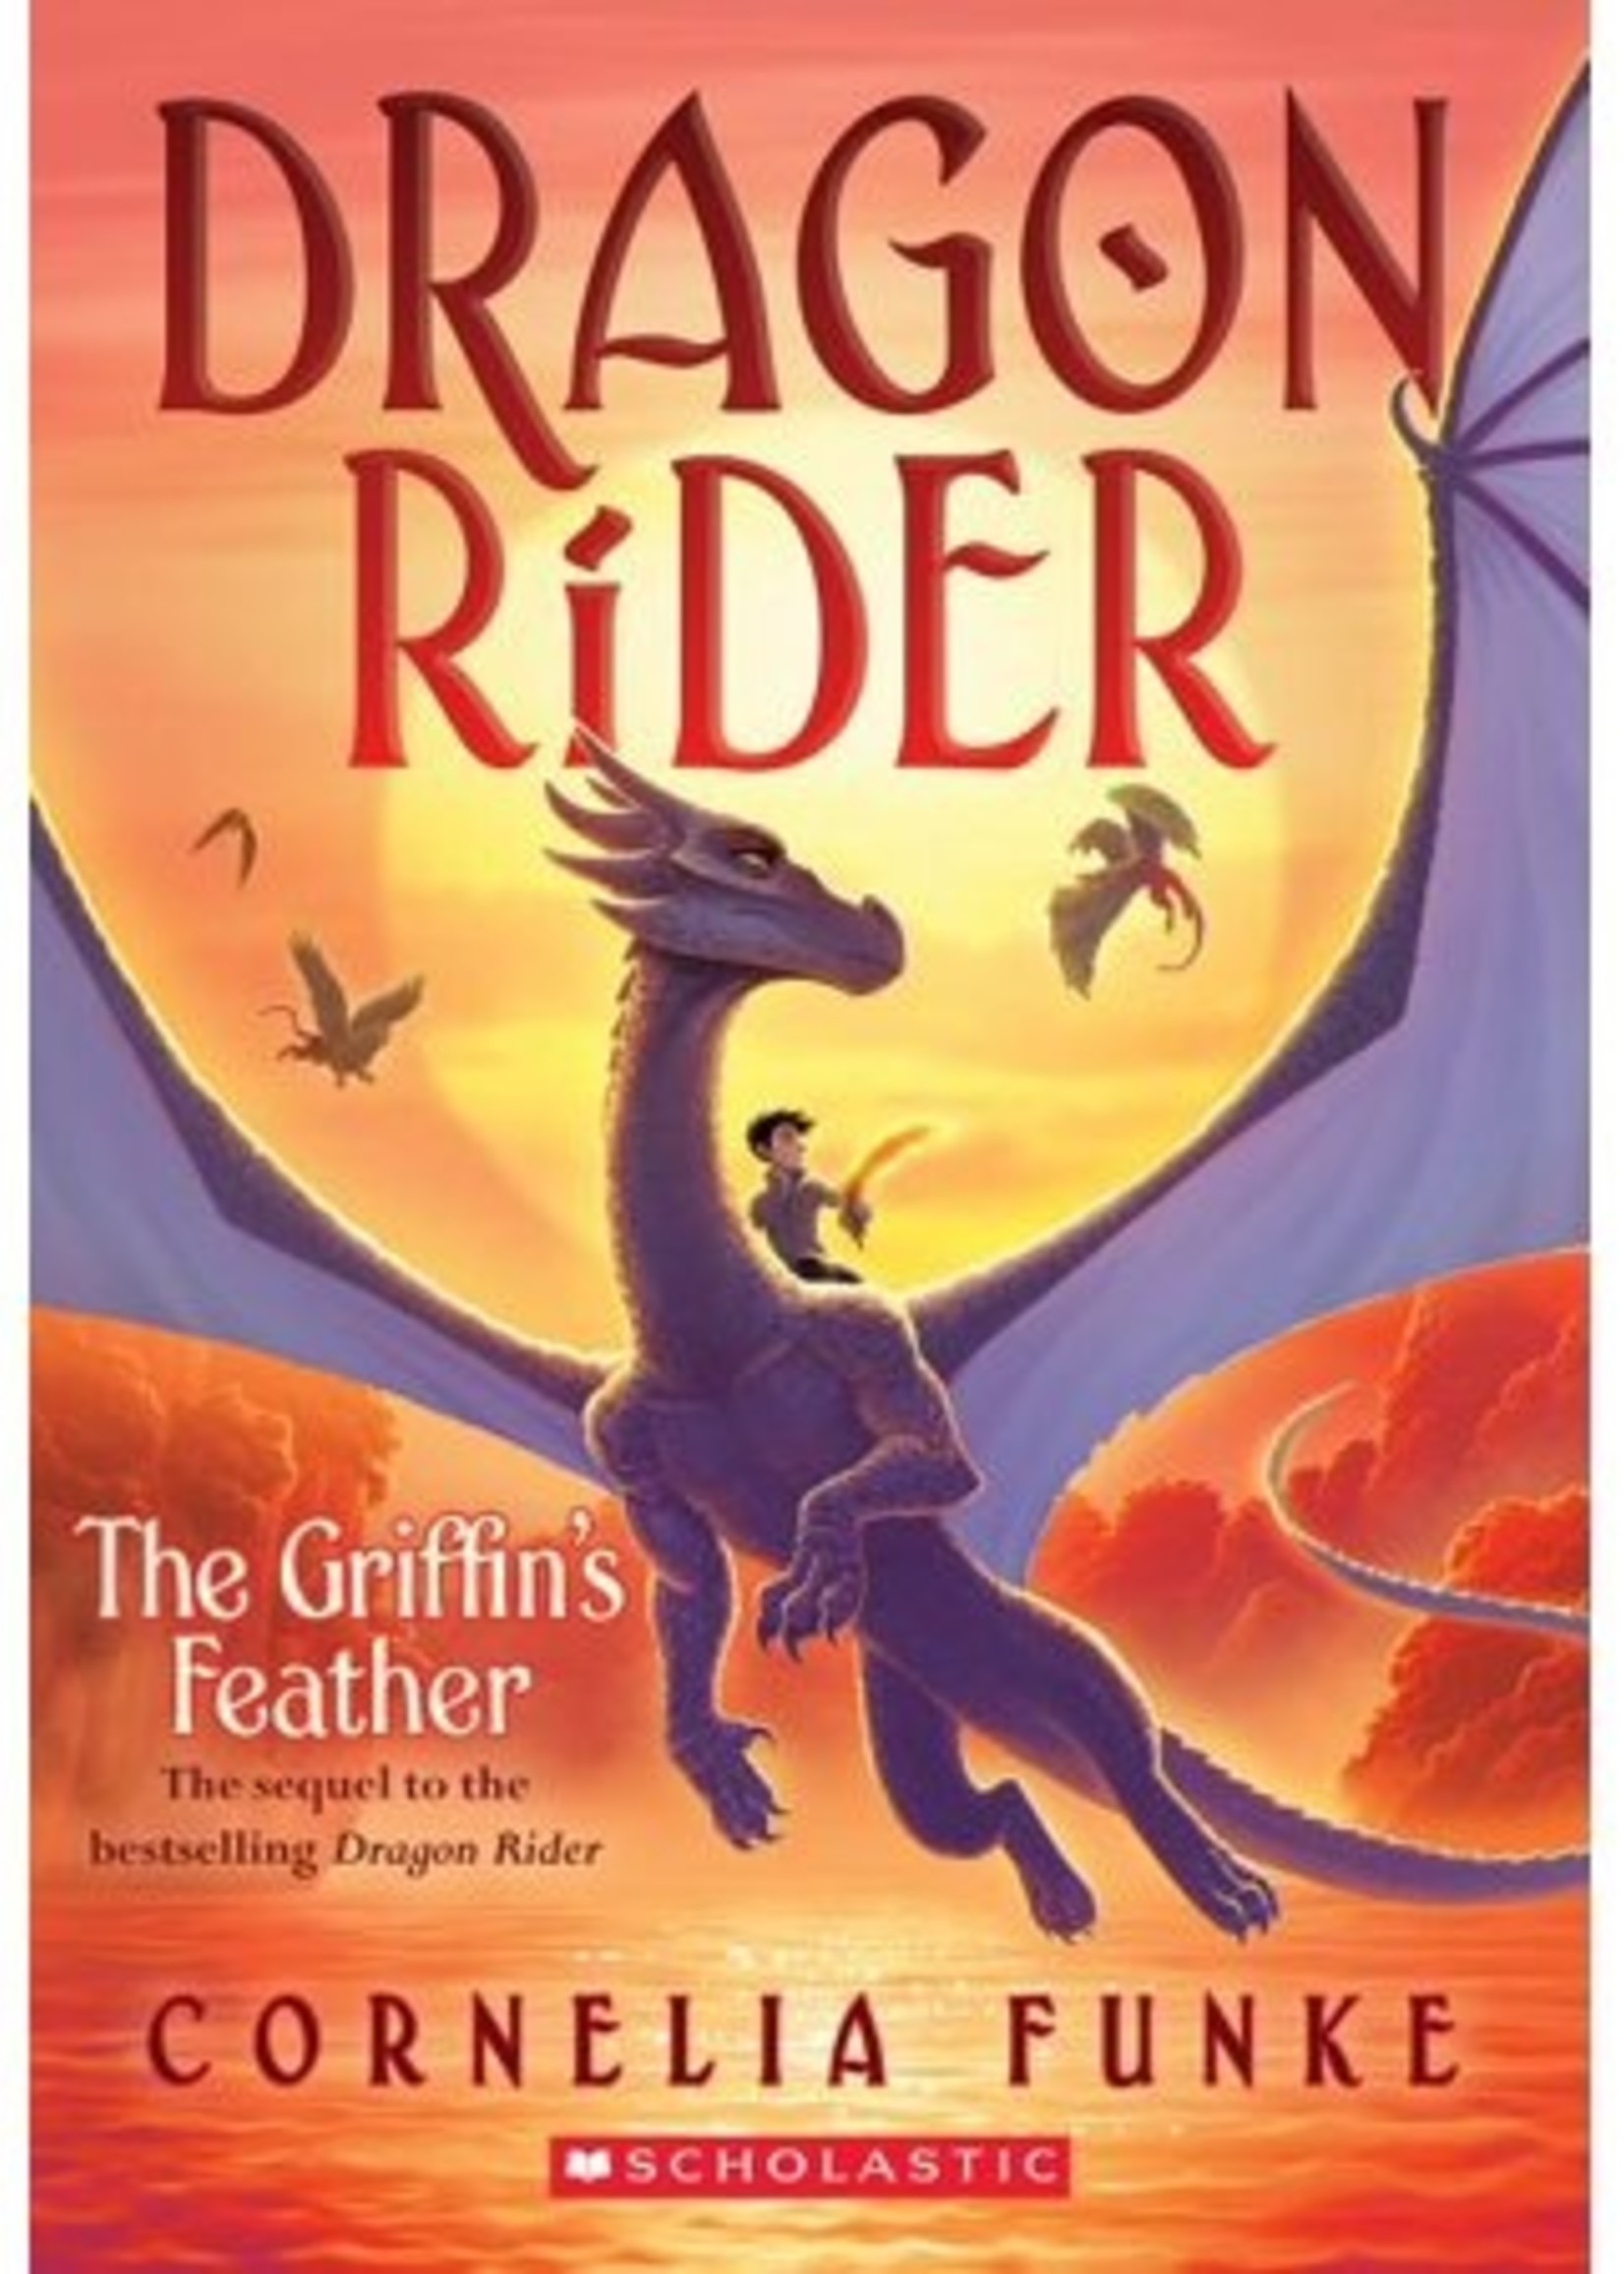 Dragon Rider #02, The Griffin's Feather - Paperback